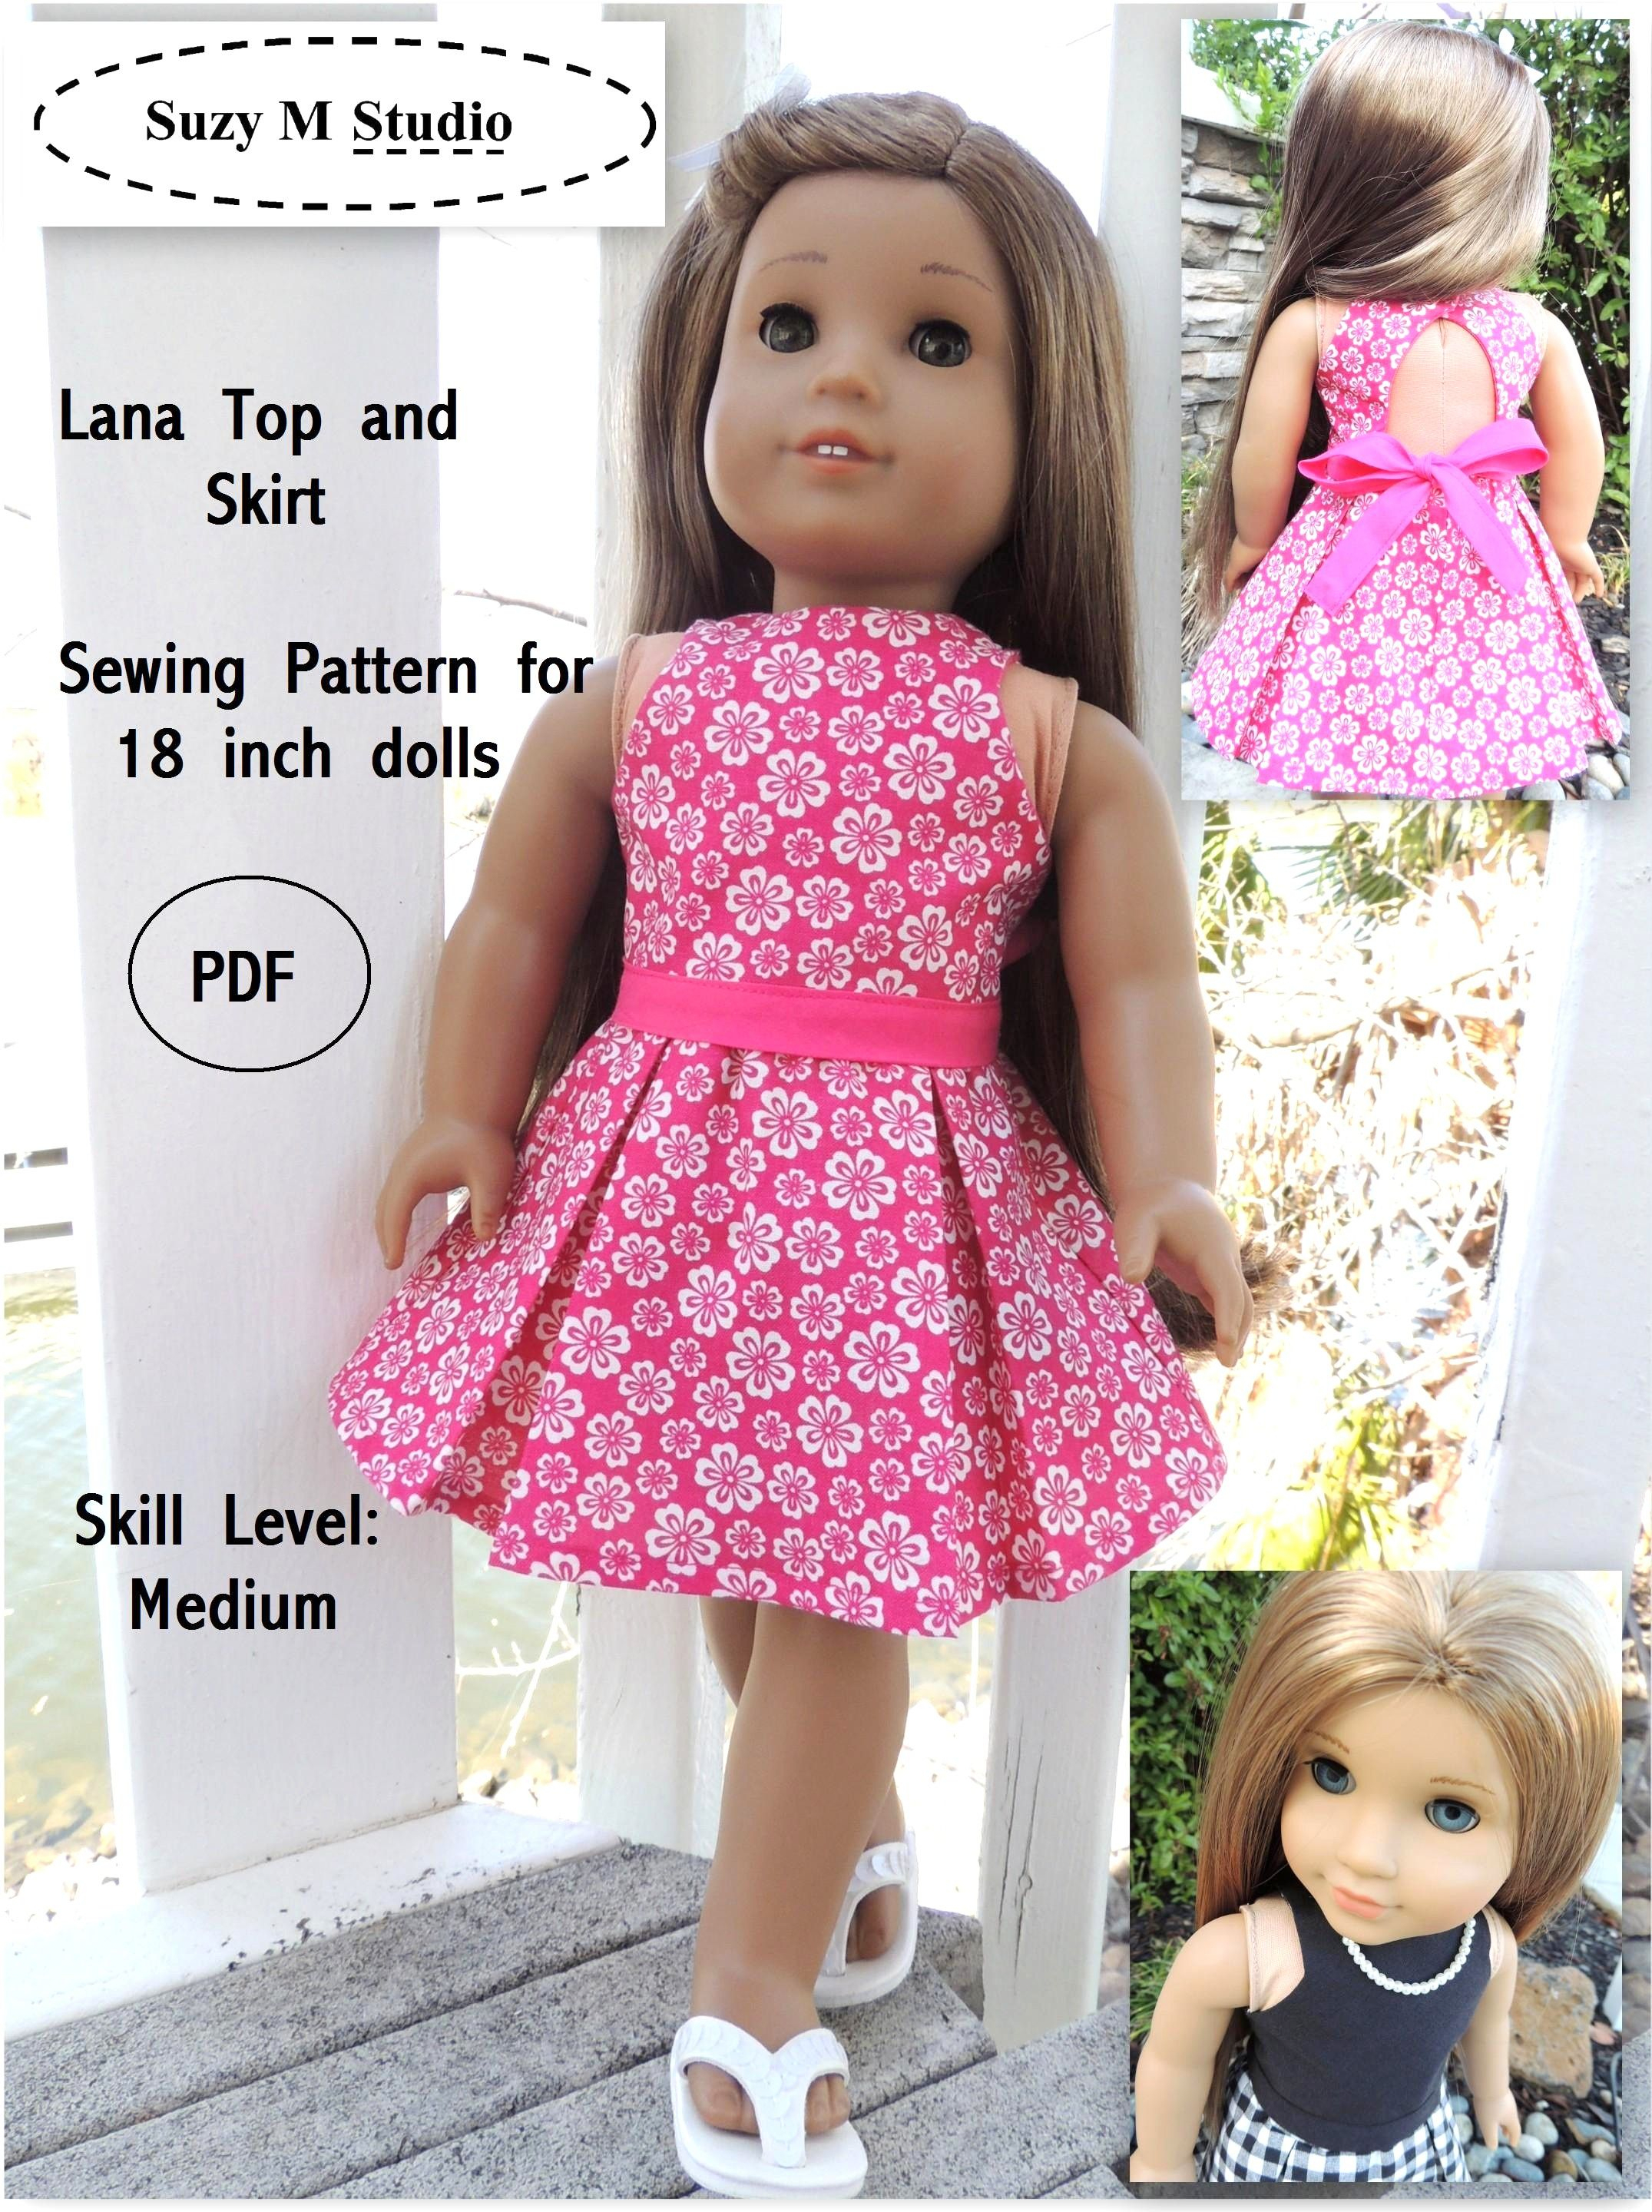 Free Tutorial Pdf | Suzymstudio … | Doll Clothes | Doll … - Free Printable Doll Clothes Patterns For 18 Inch Dolls